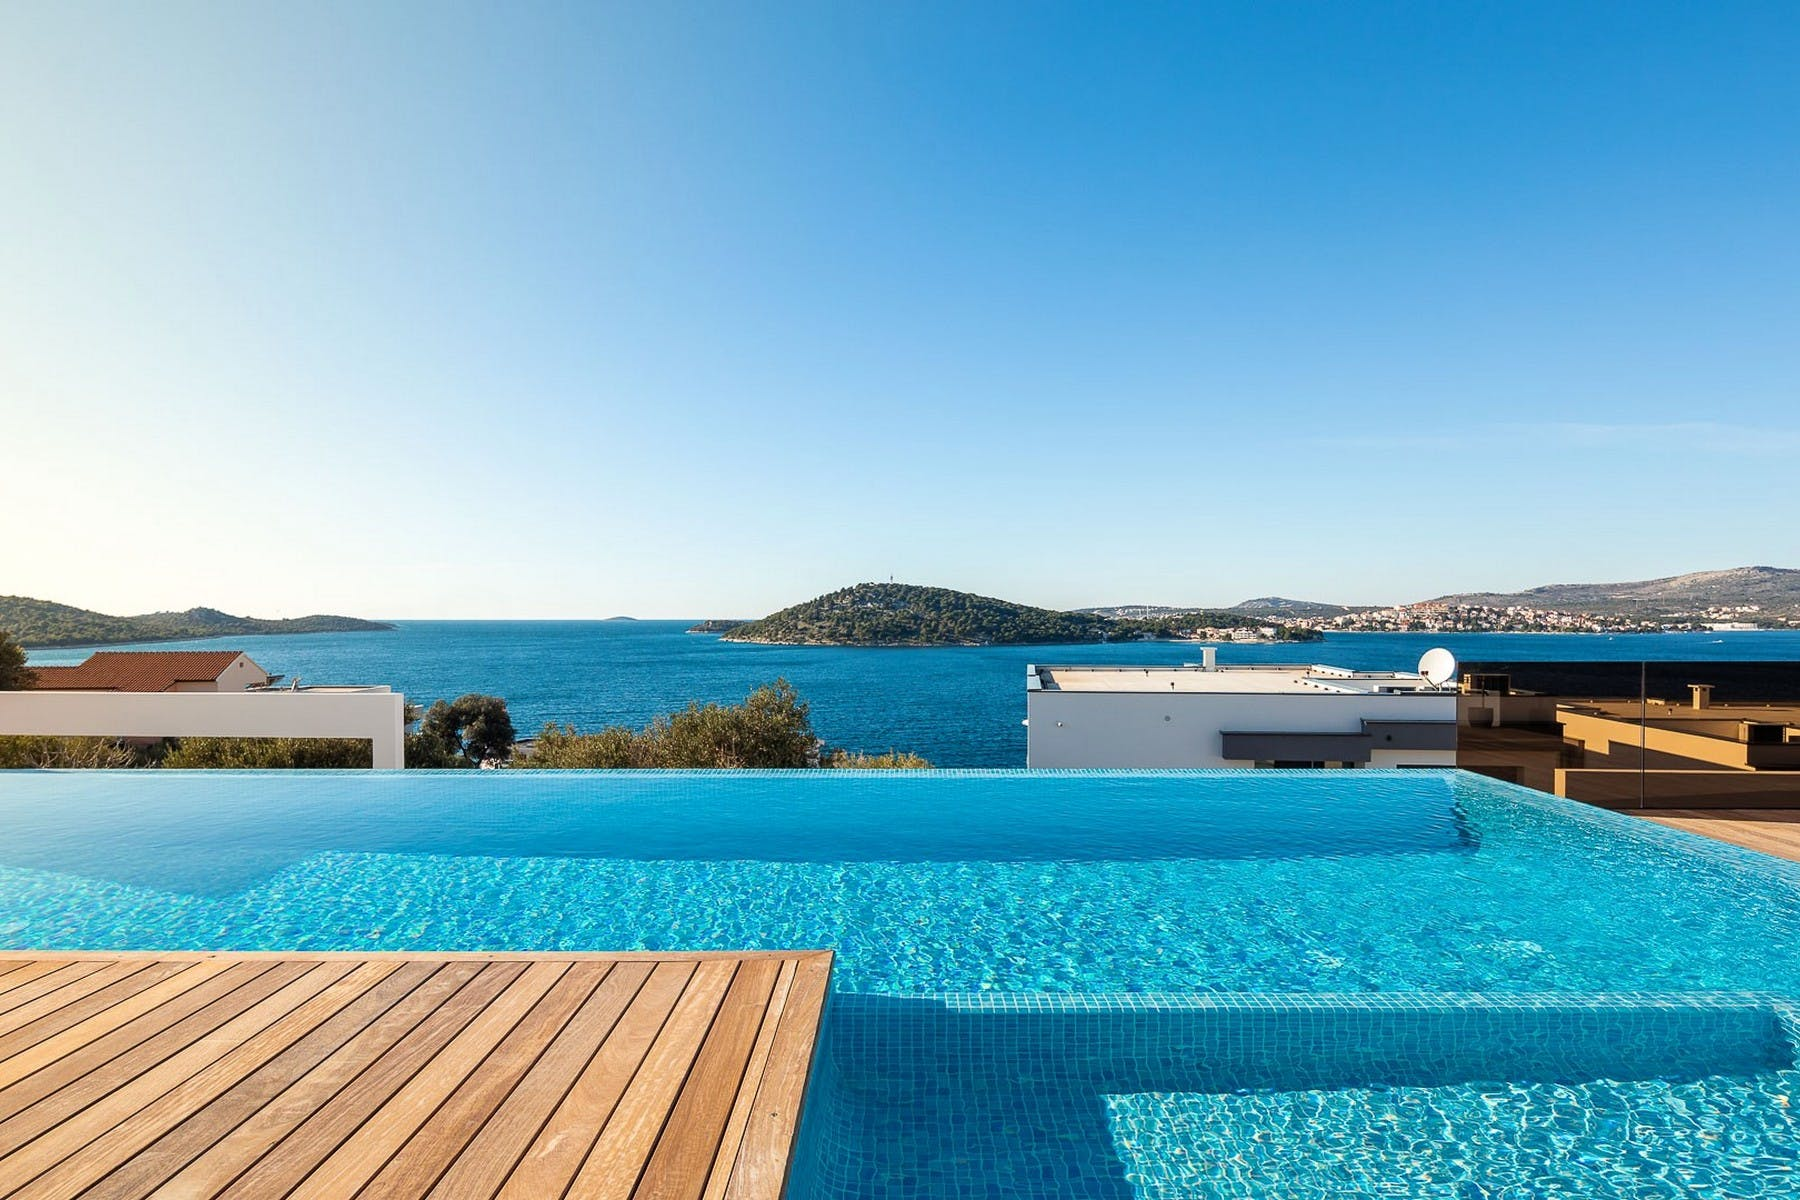 Stunning open sea view from terrace and infinity swimming pool